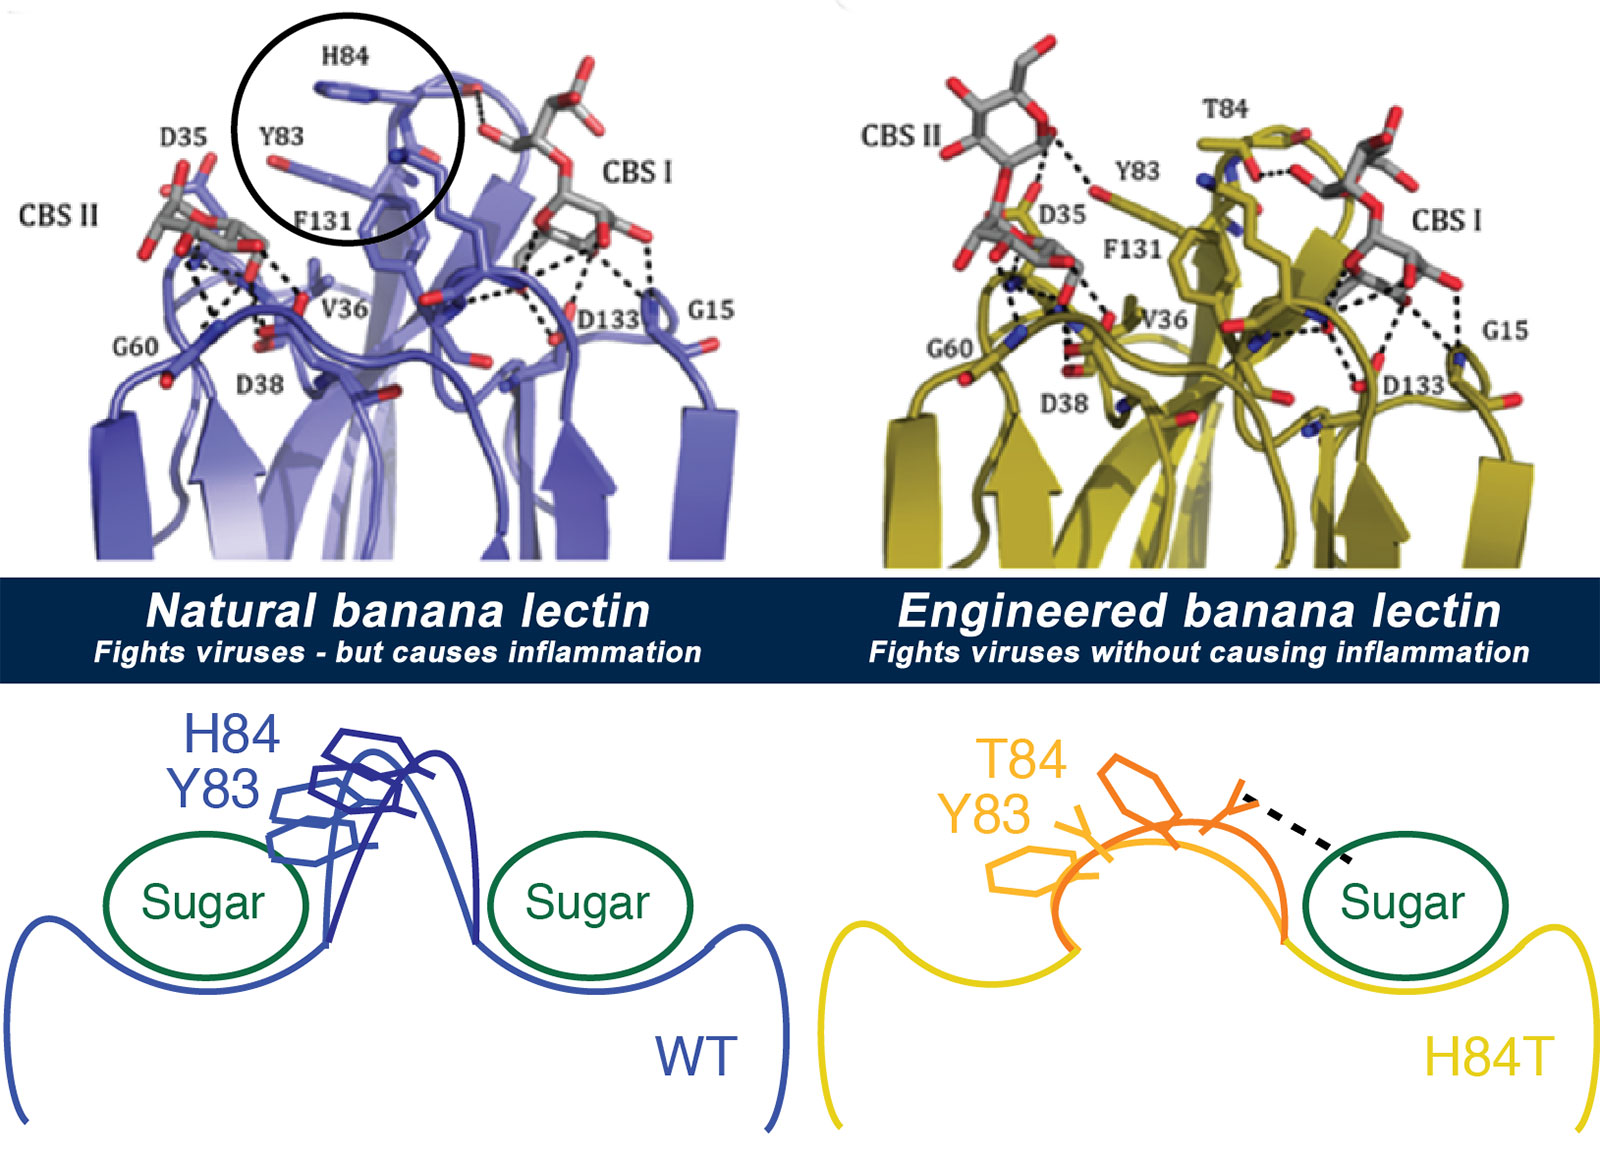 By studying the banana lectin molecule (top left) and what made it bind to both viruses and immune system cells (bottom left), the team was able to figure out how to change the way cells bind to it, to make a new version (top right) that still binds viruses but doesn't cause inflammation (bottom right).